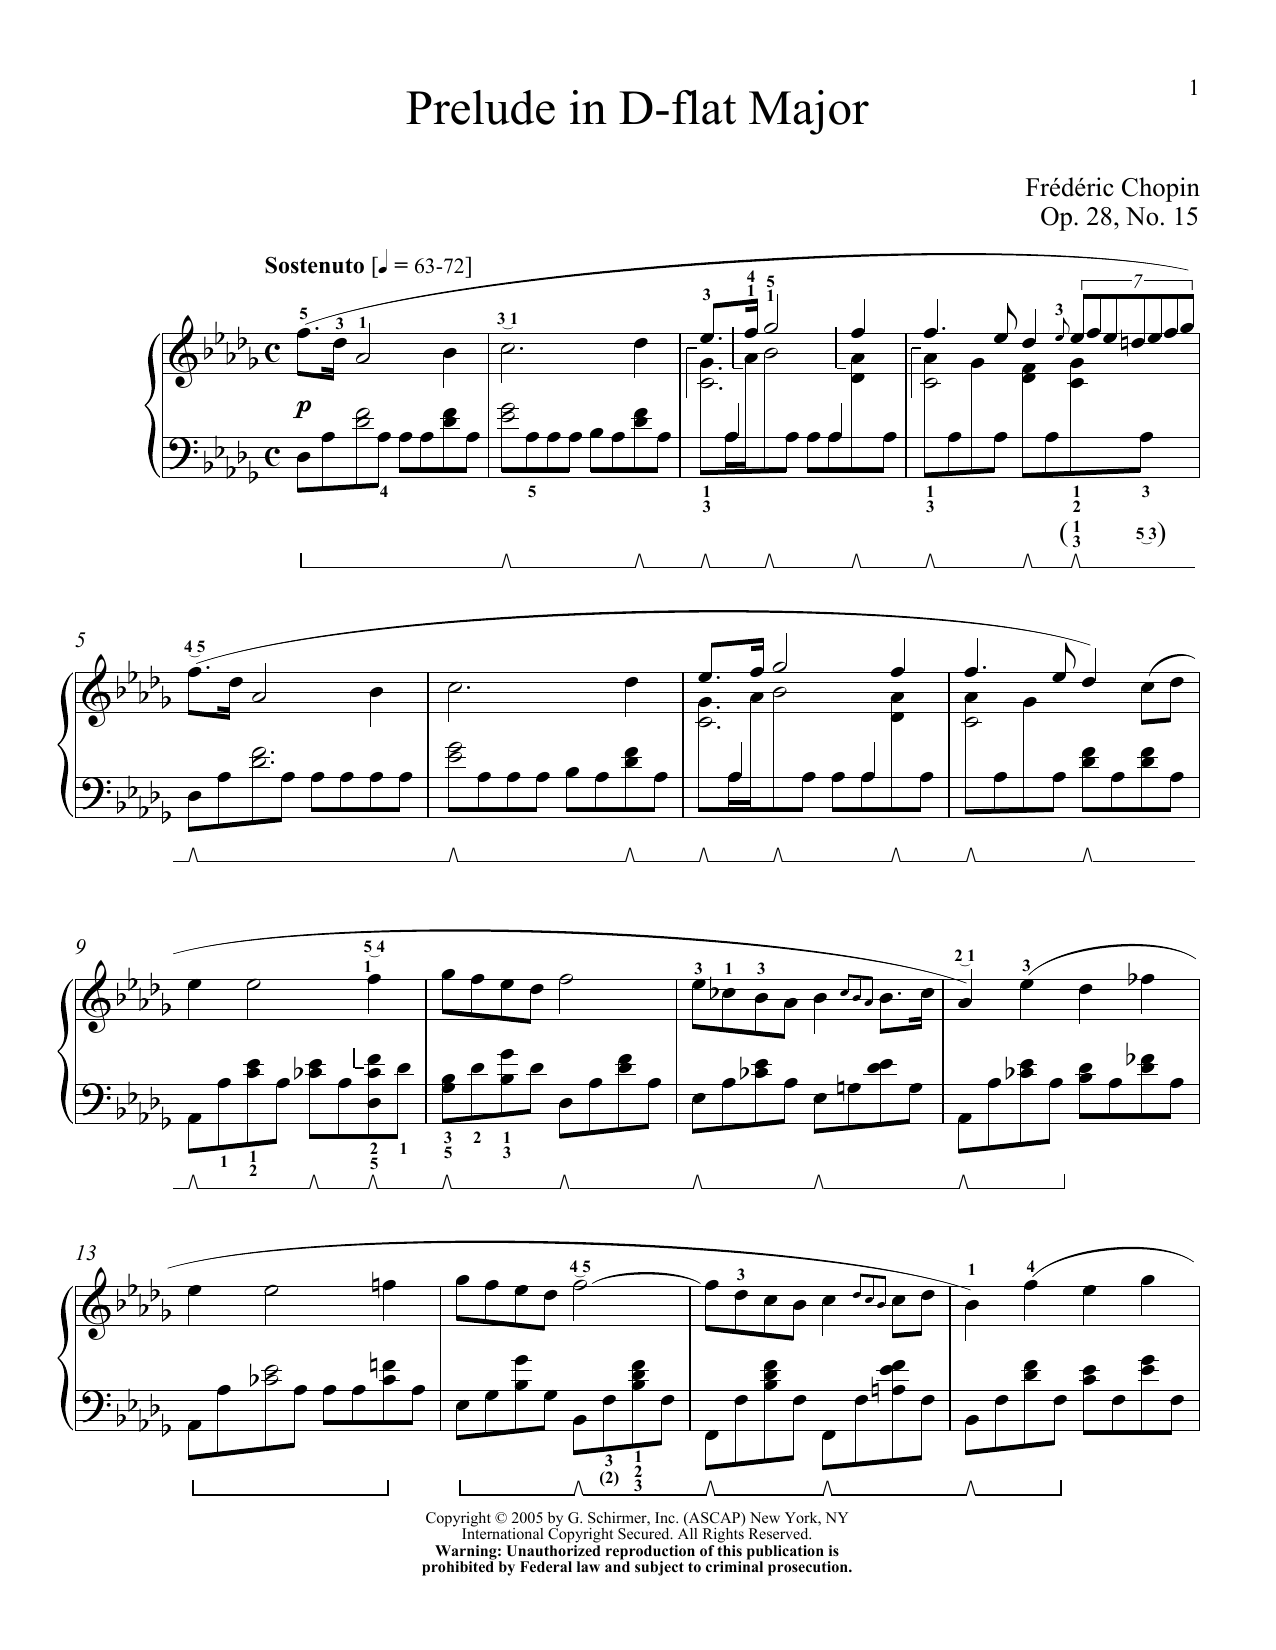 Prelude In D Flat Major, Op. 28, No. 15 (Raindrop) Sheet Music